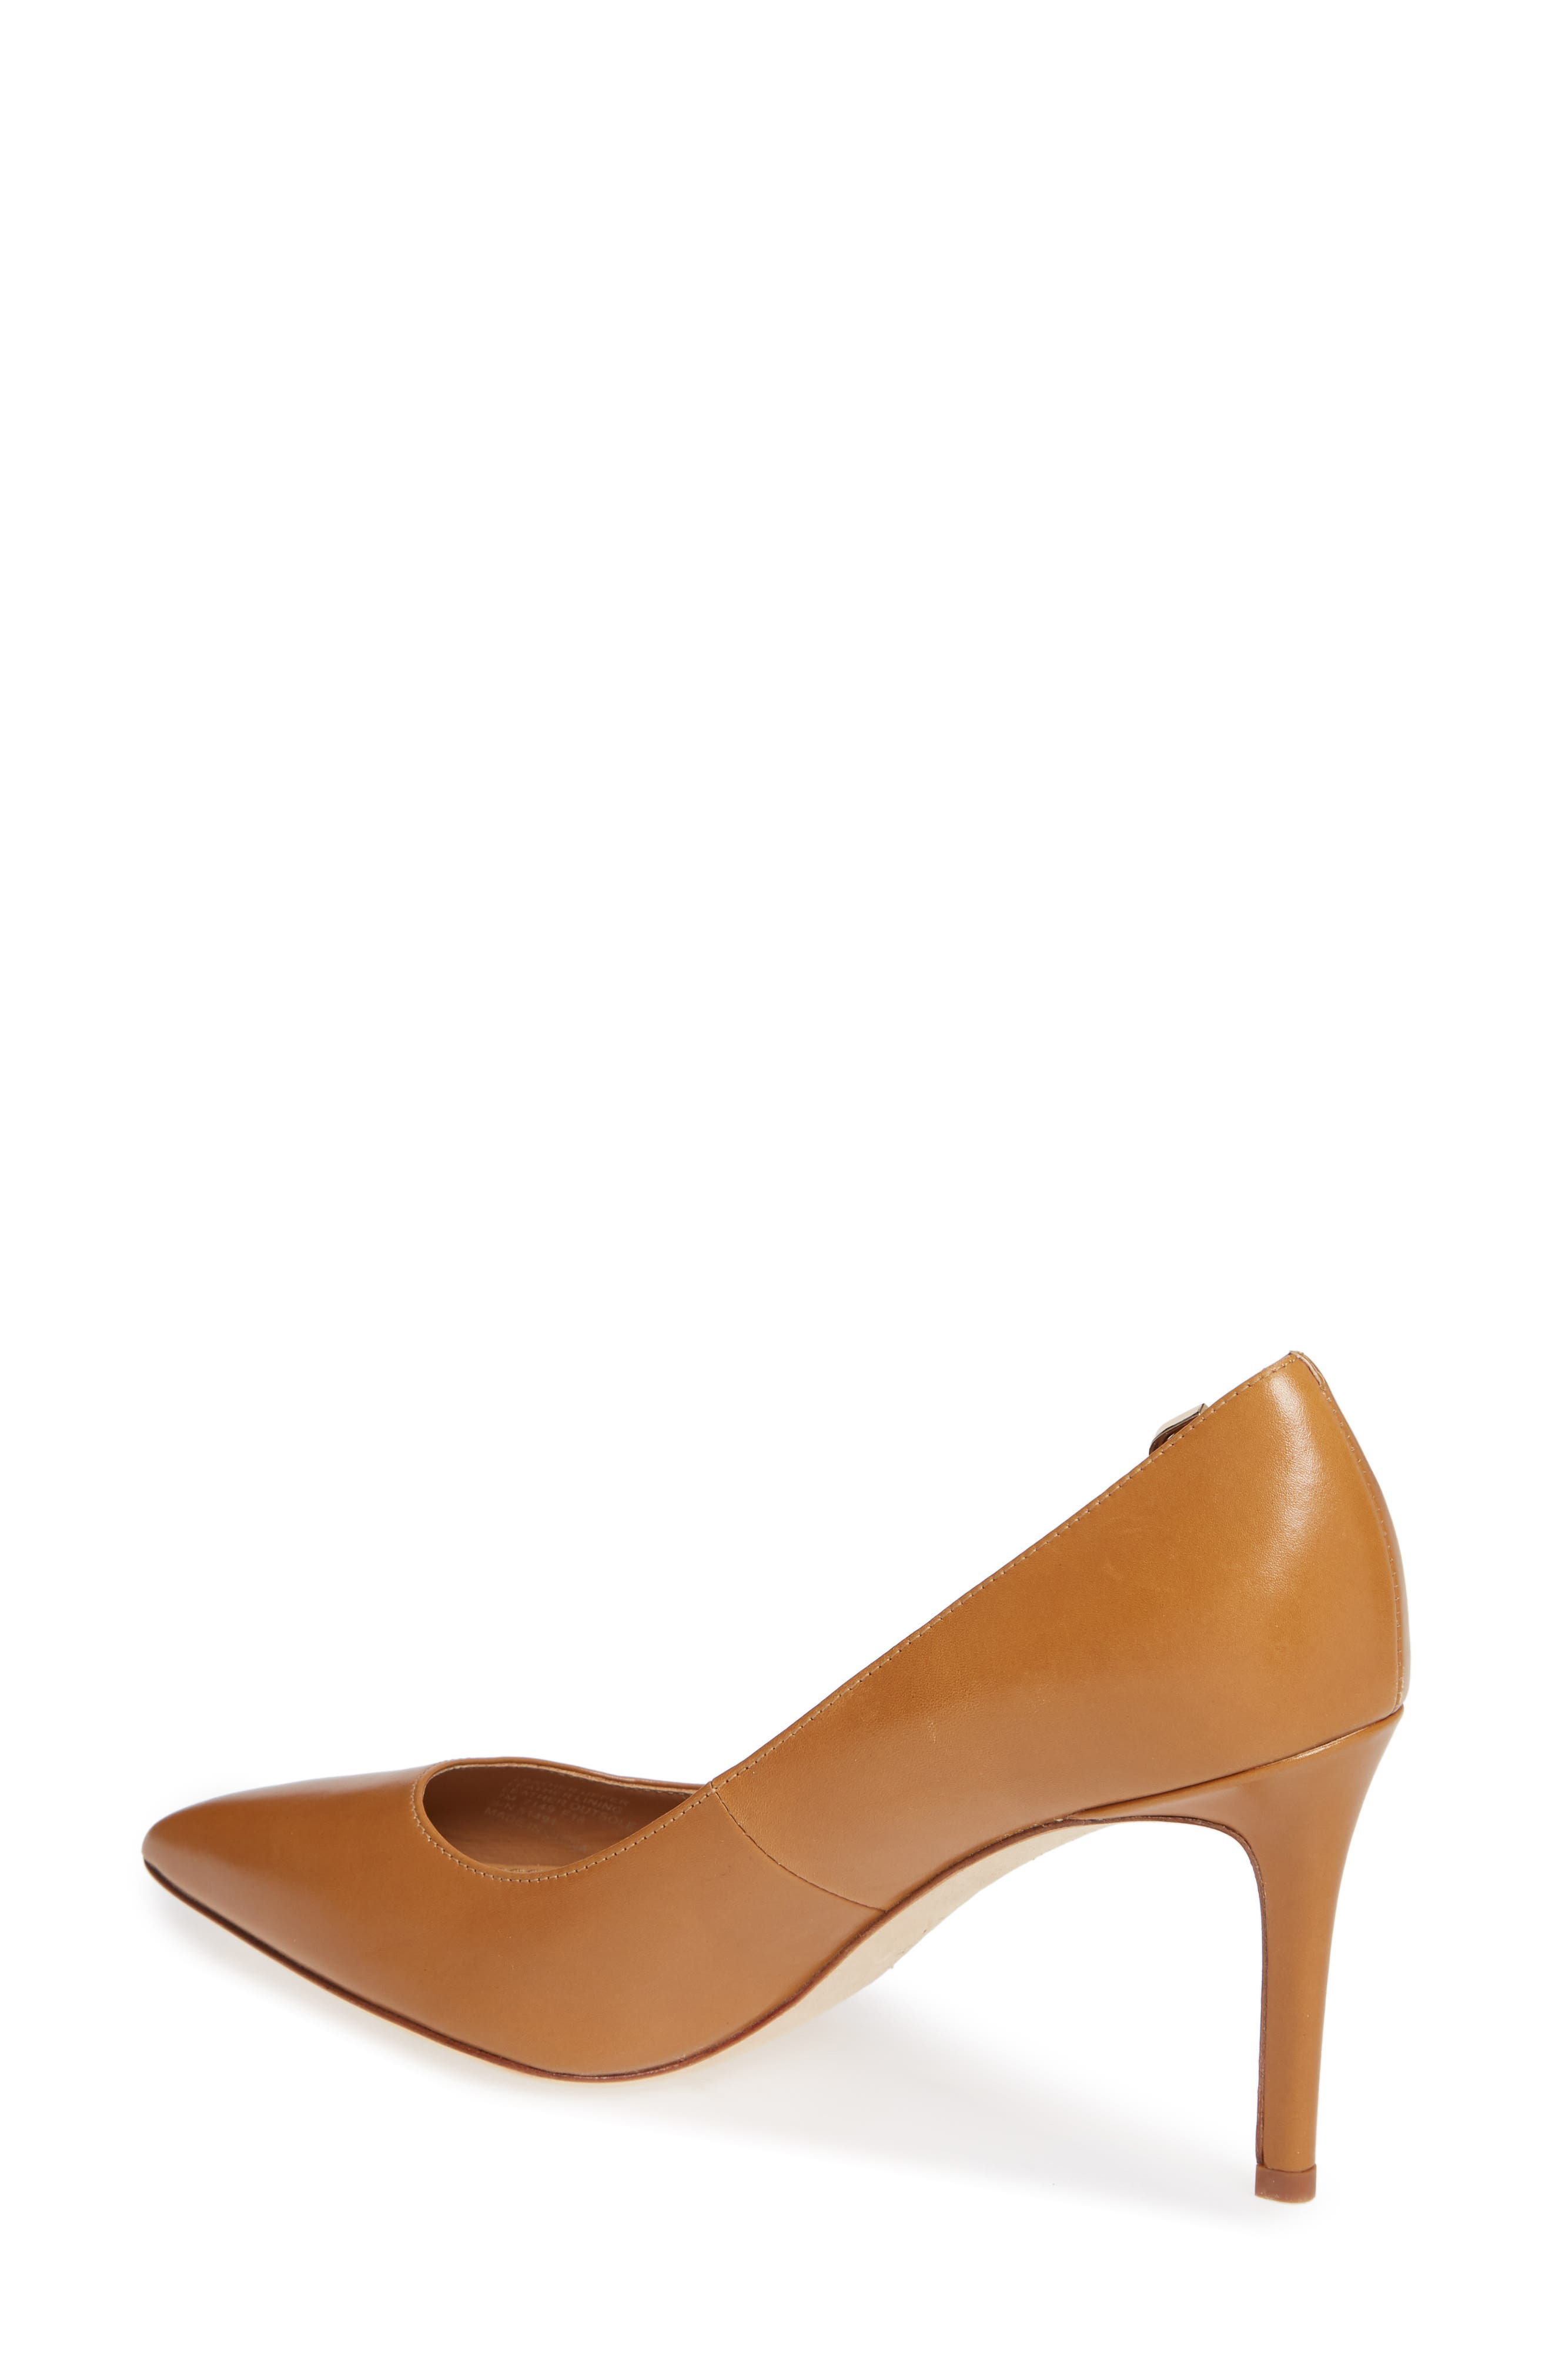 Elizabeth Pointy Toe Pump,                             Alternate thumbnail 2, color,                             DEEP VICUNA